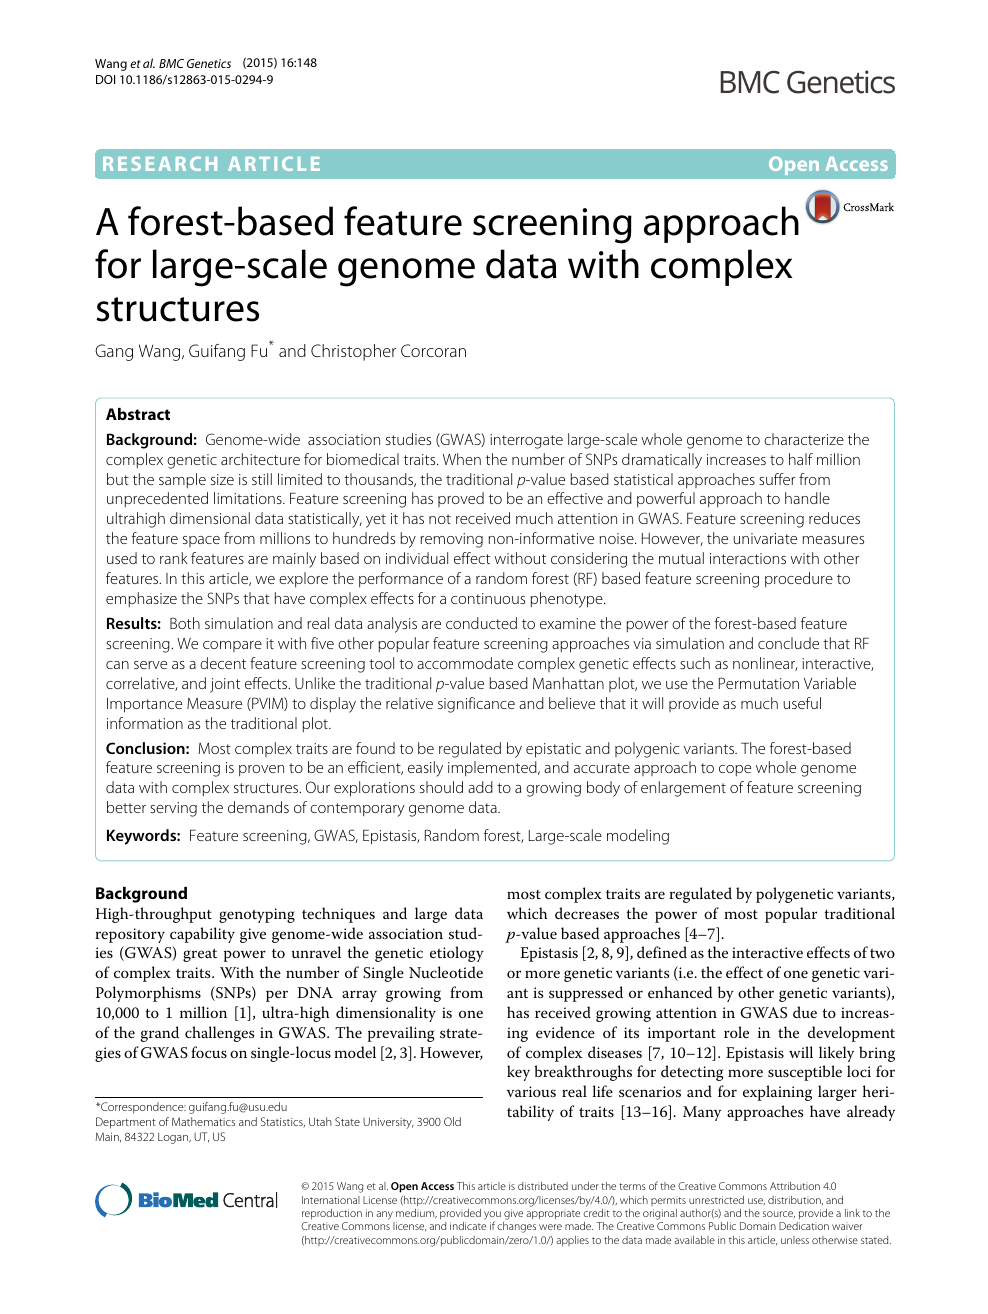 A forest-based feature screening approach for large-scale